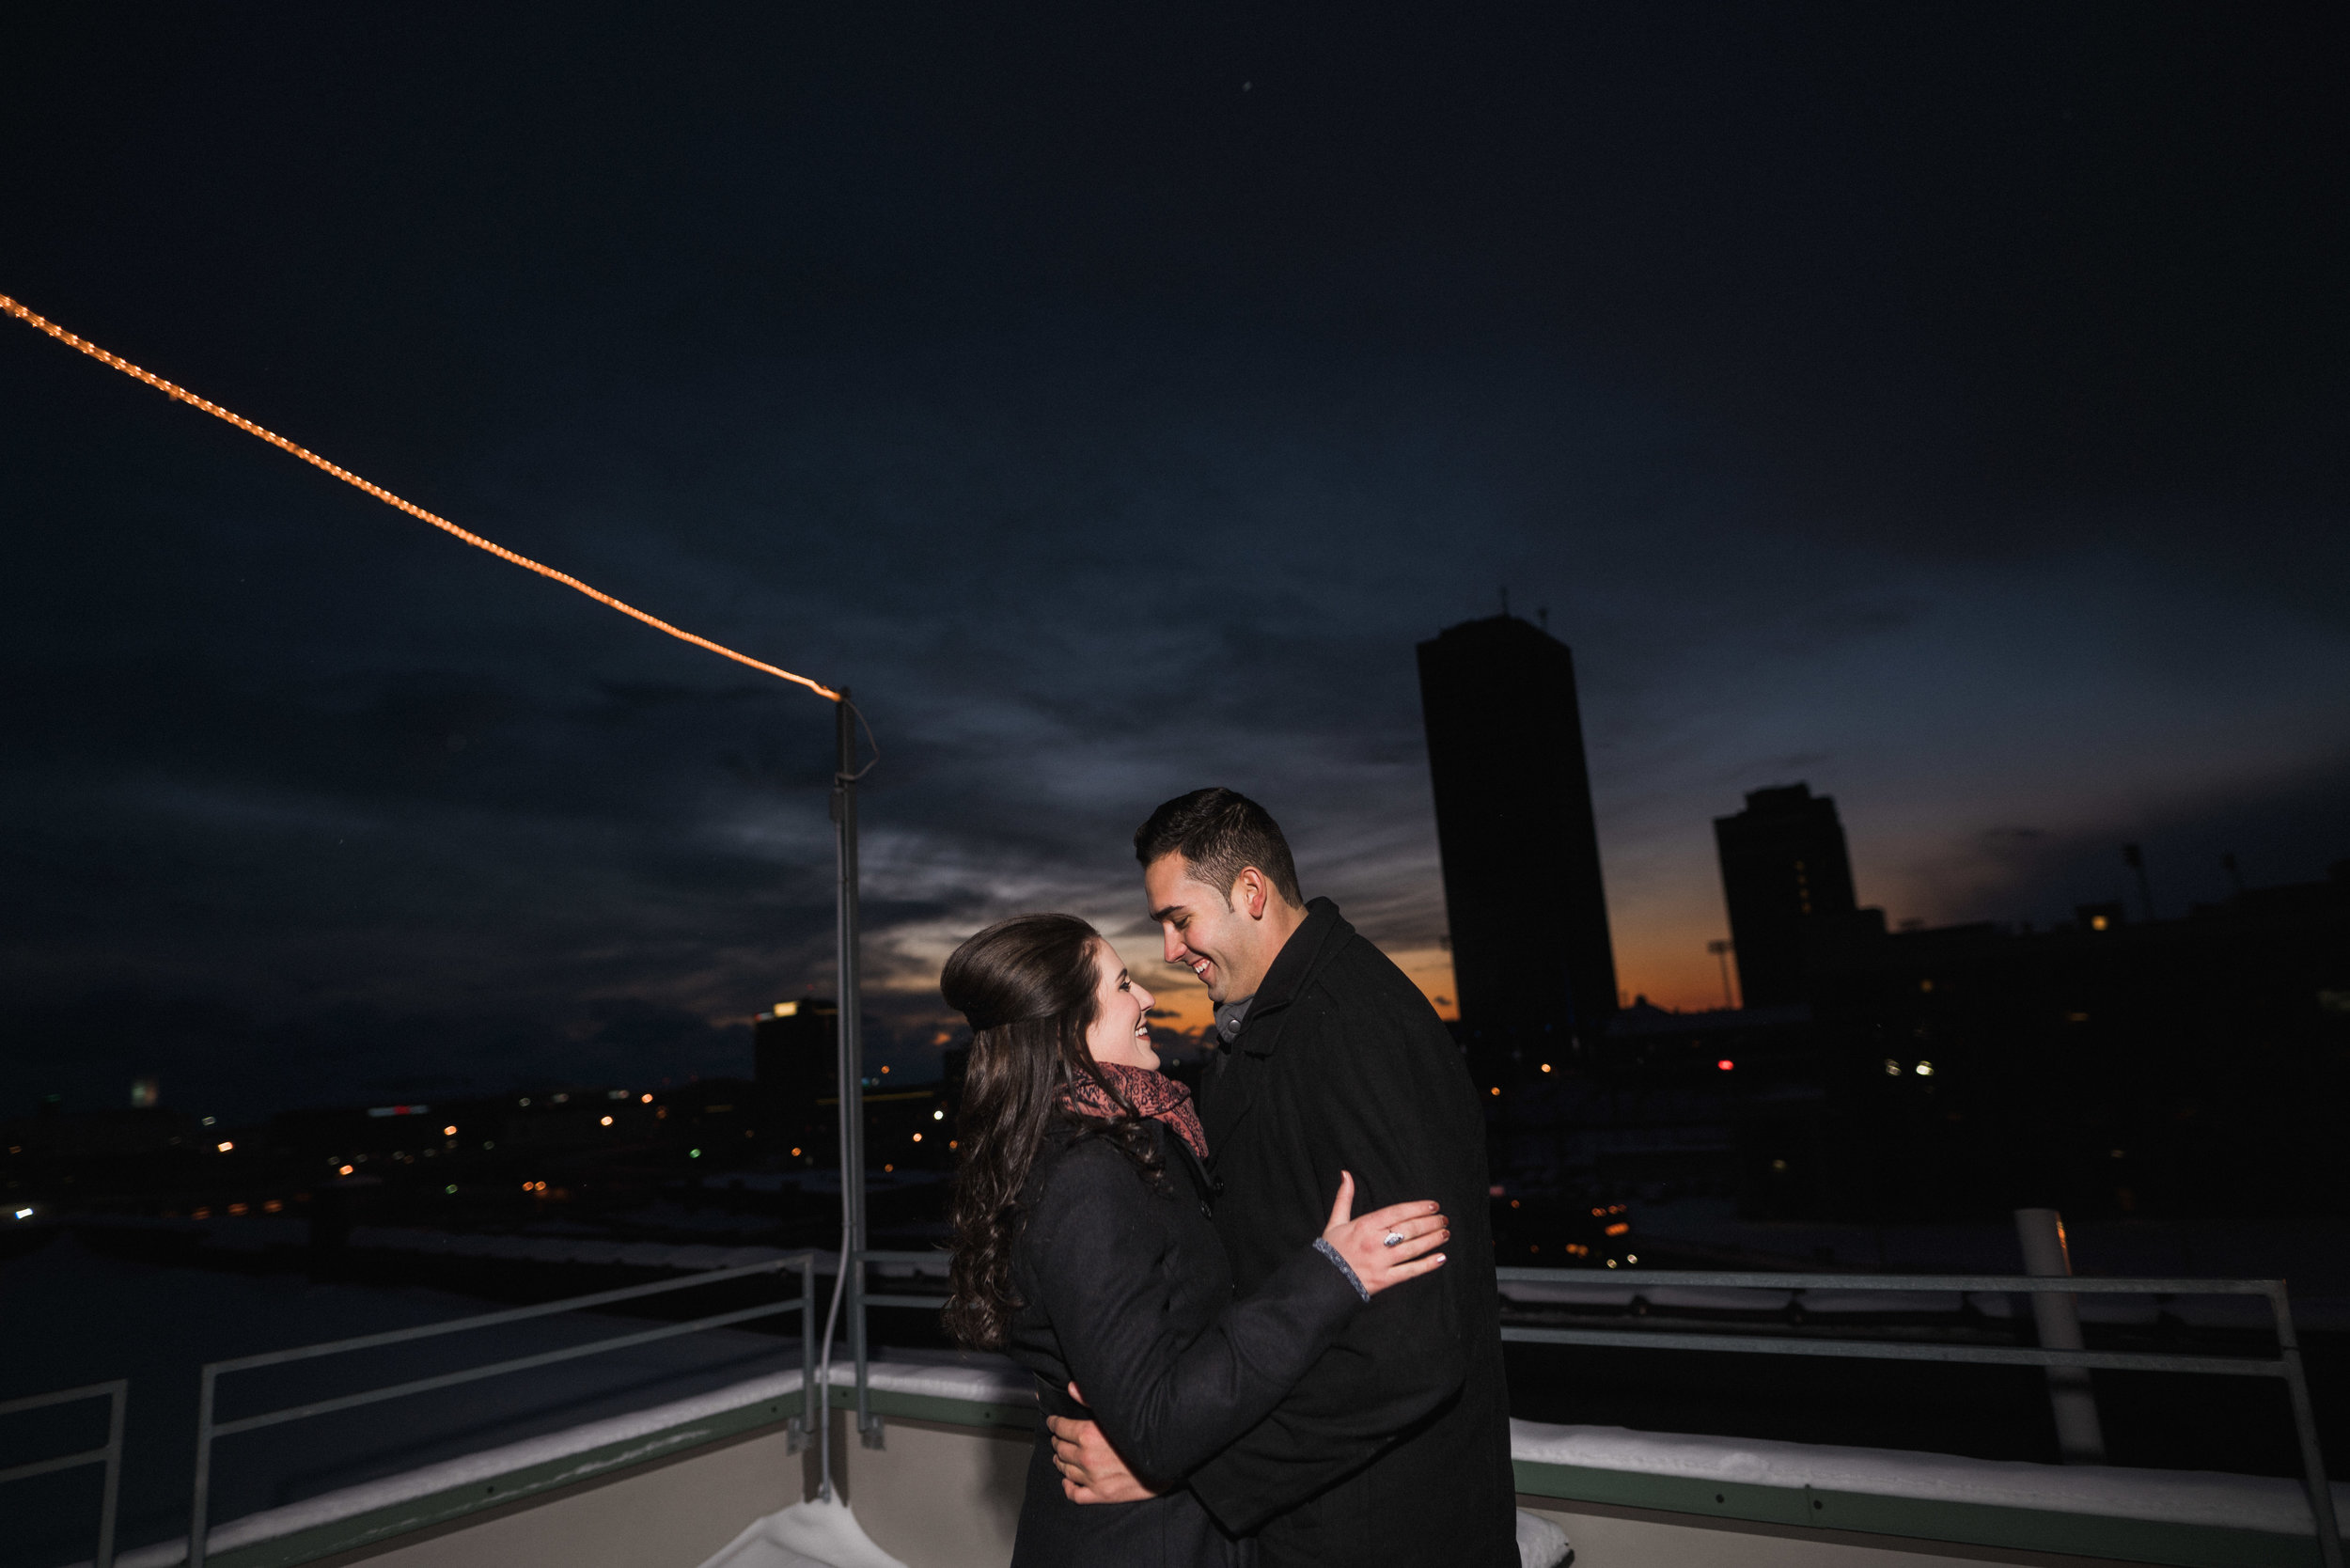 Sara and Mike Engagement Photography in Downtown Buffalo by Stefan Ludwig Photography-35.jpg